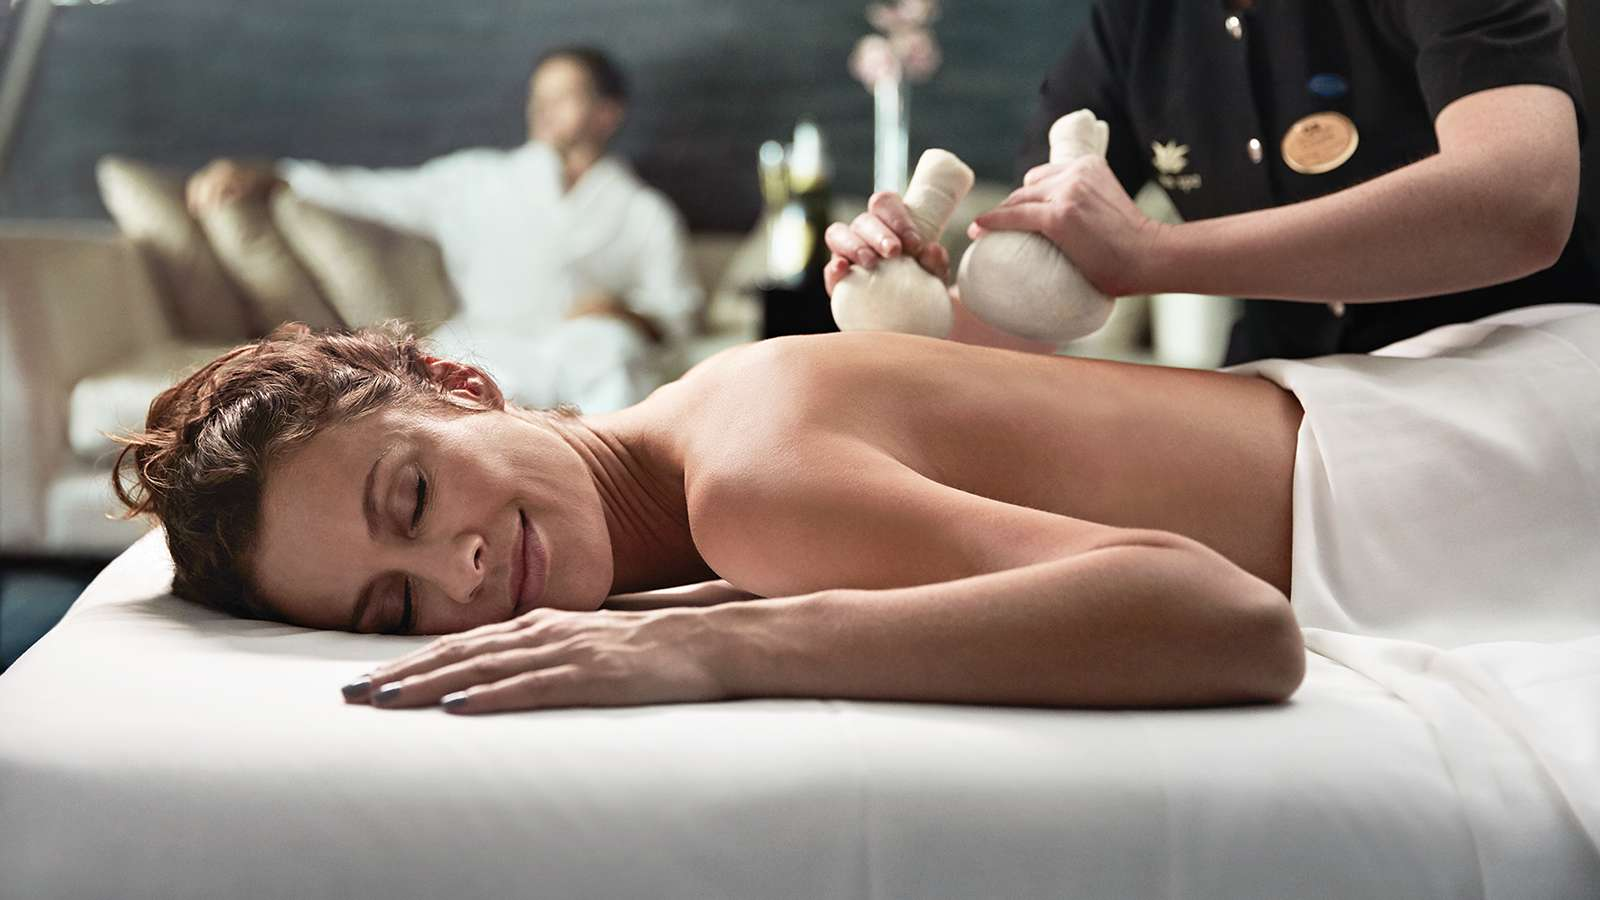 GO AHEAD, BE PAMPERED – YOU DESERVE IT